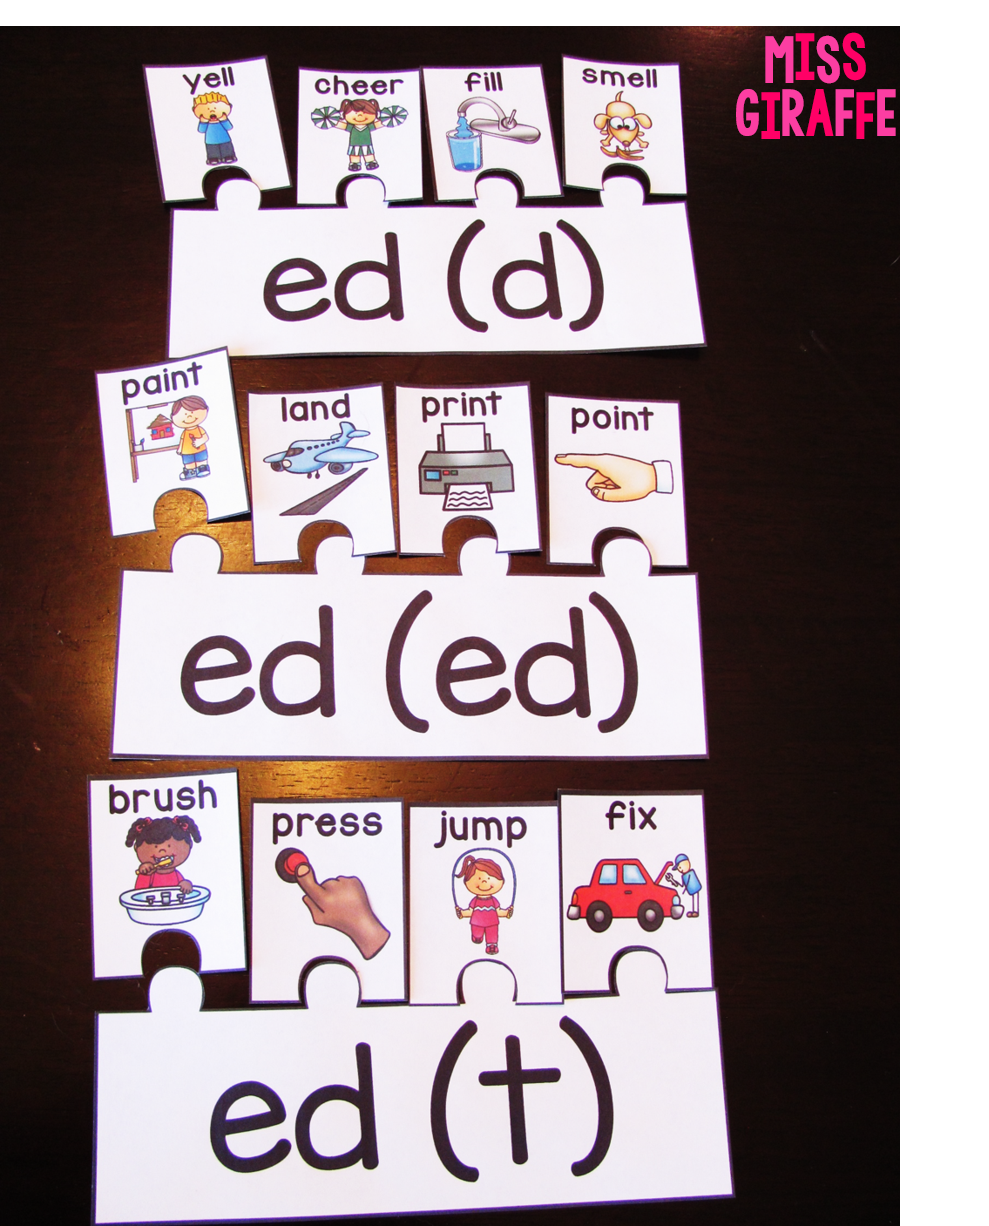 Miss Giraffe's Class: Prefixes and Suffixes Teaching Ideas for  math worksheets, alphabet worksheets, education, worksheets, and multiplication Suffix Ed And Ing Worksheets 1226 x 989